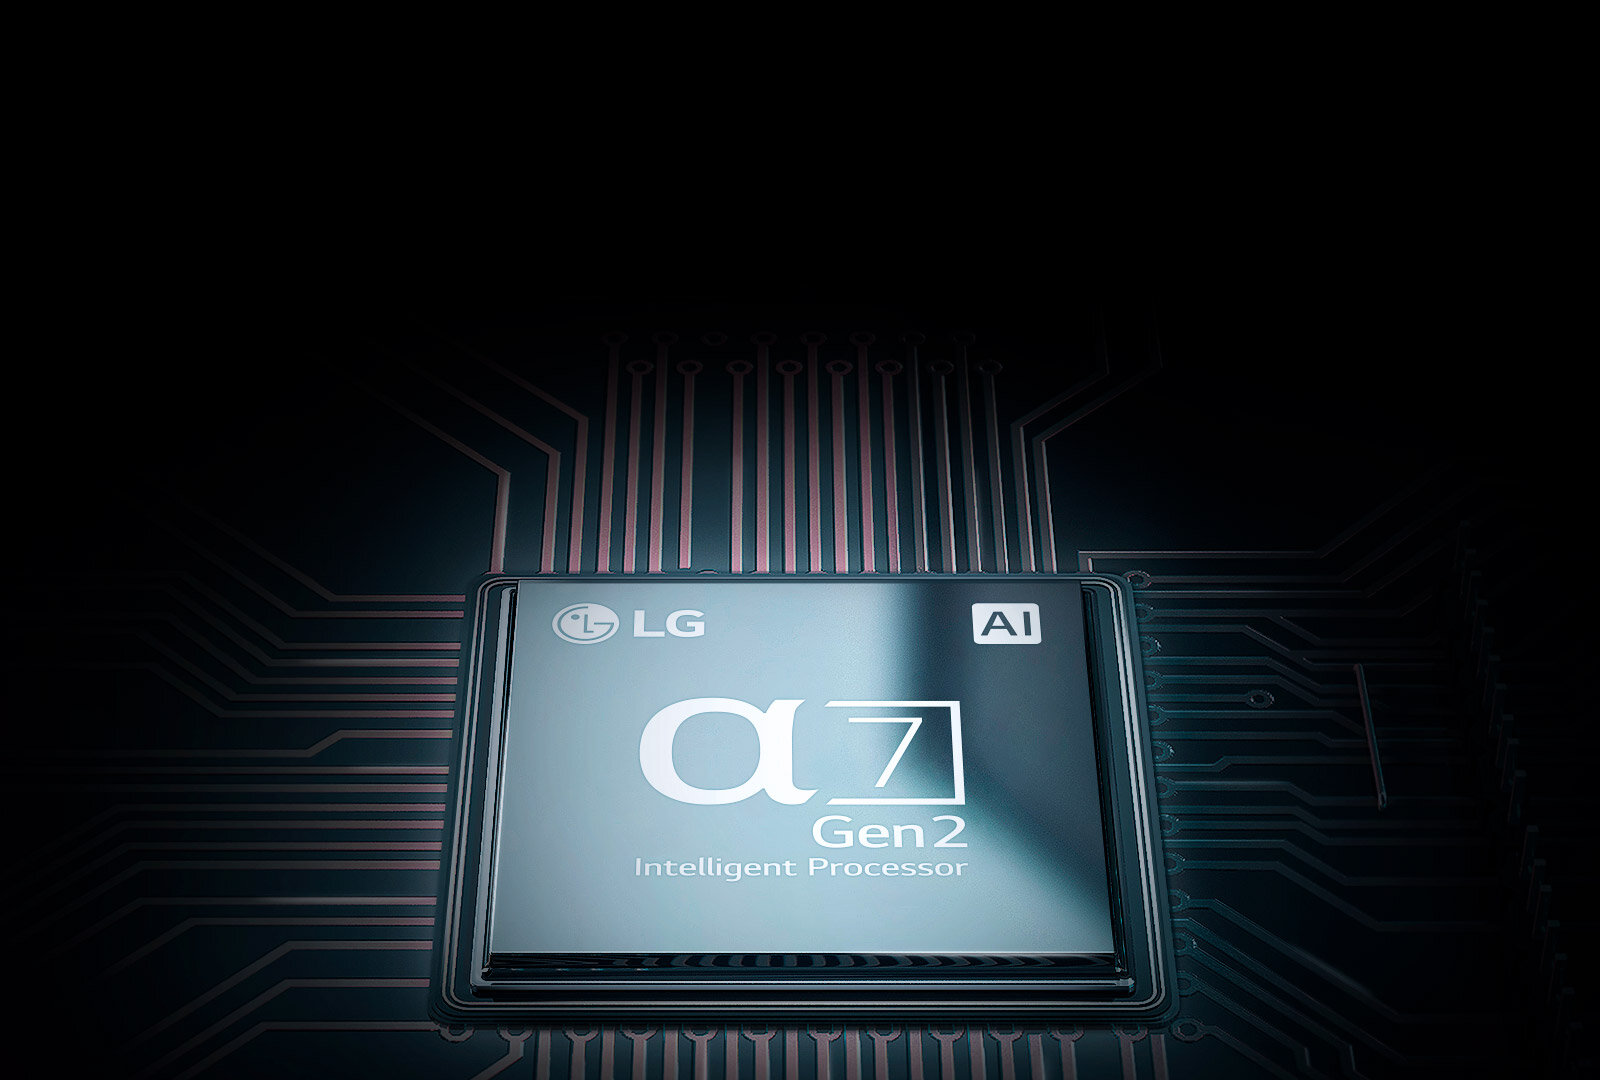 New 2nd Gen α7 Processor with AI - The 2nd gen α7 Processor upgraded with Deep Learning AI algorithm provides a breathtaking detailed image and custom sound to be immersed in incredible reality.